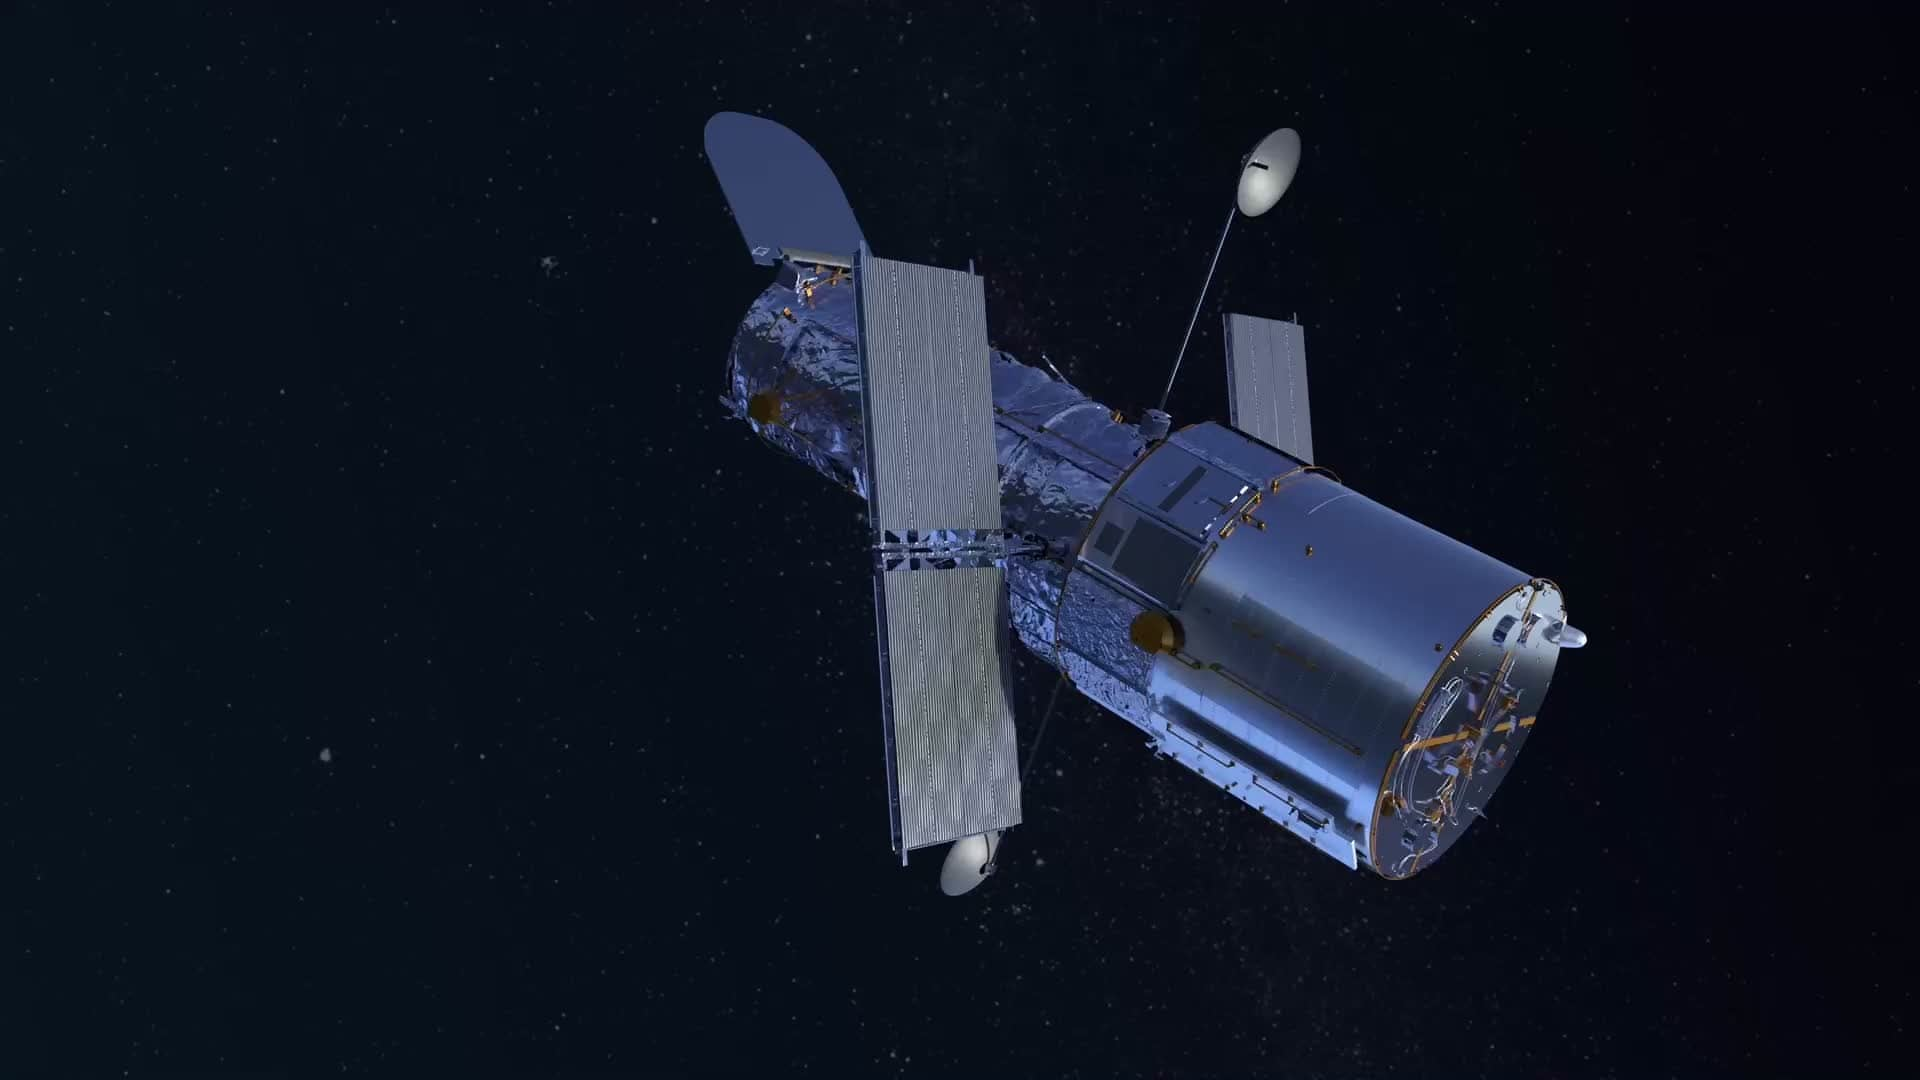 Hubble Space Telescope Struggling - Videos from The Weather Channel | weather.com